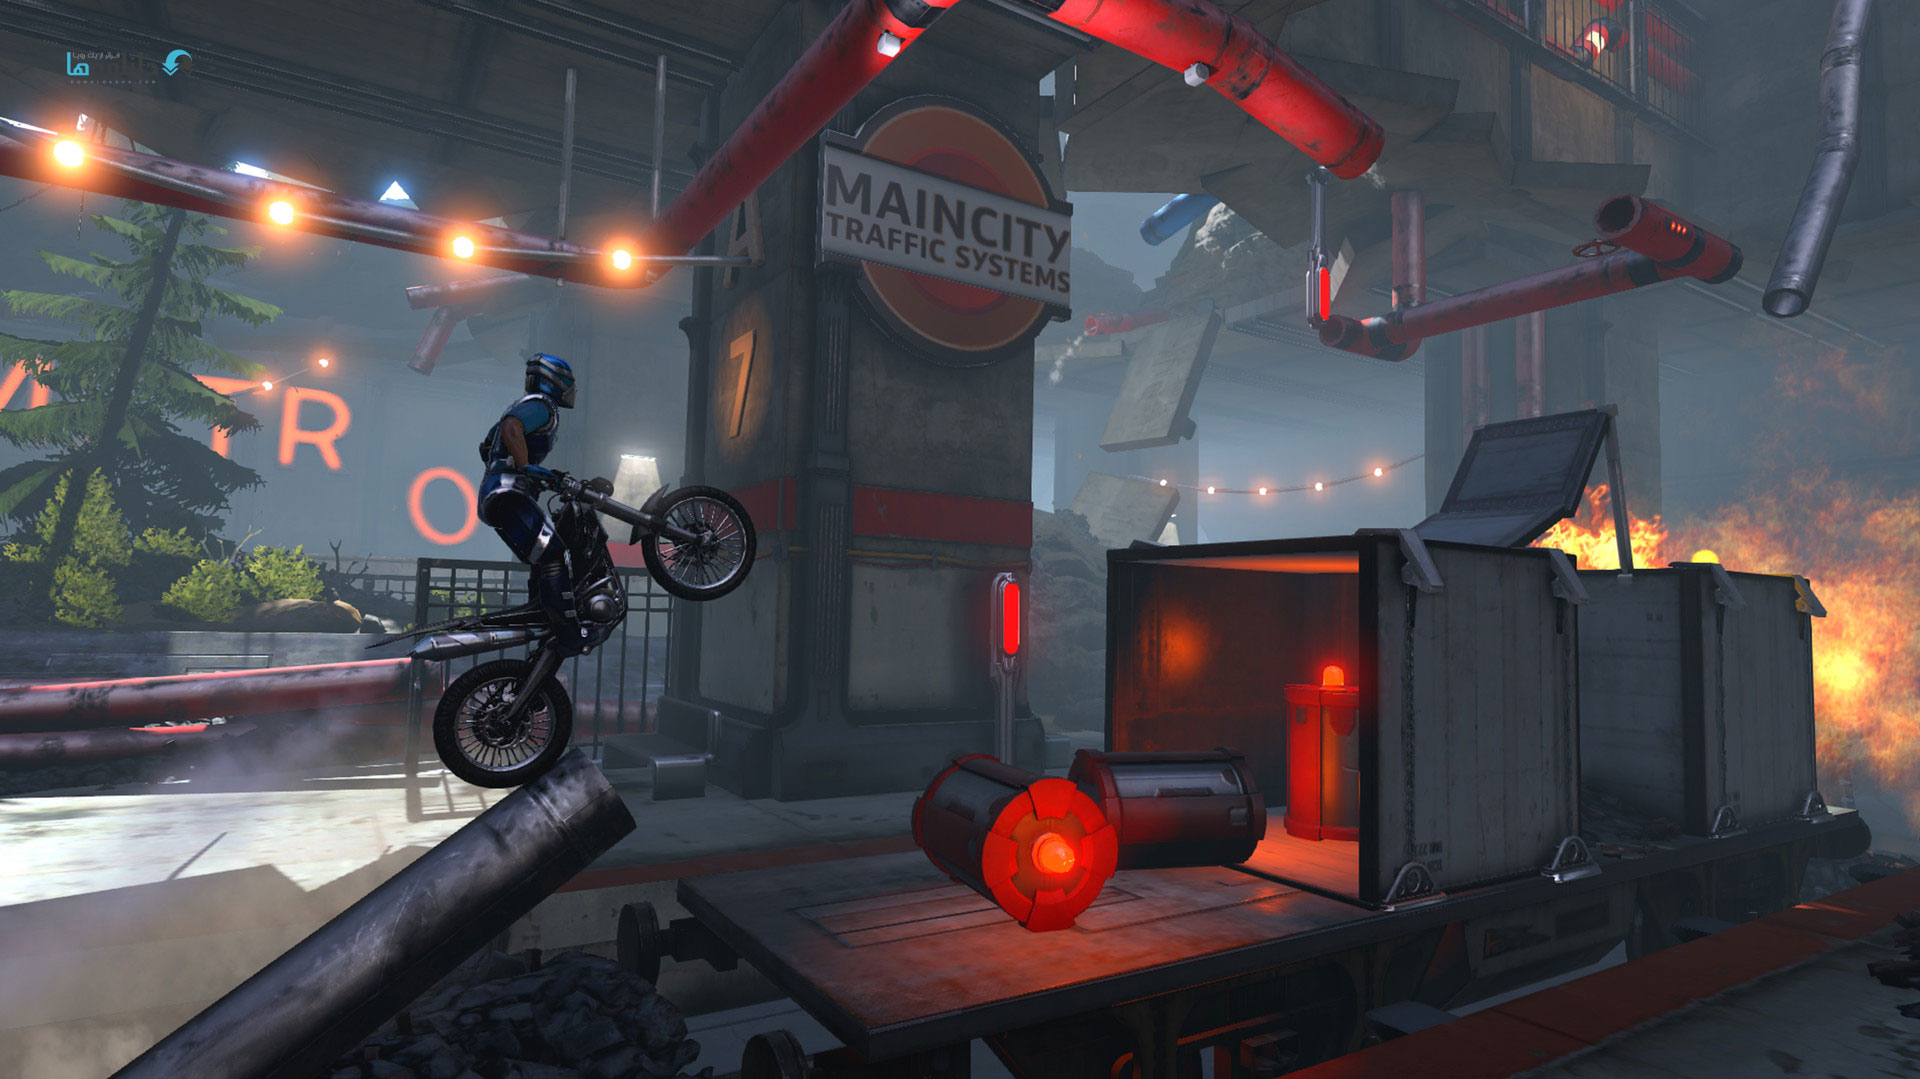 http://dl5.downloadha.com/hosein/Game/January%202015/30/Trials-Fusion-Fire-in-the-Deep-screenshots-01-large.jpg